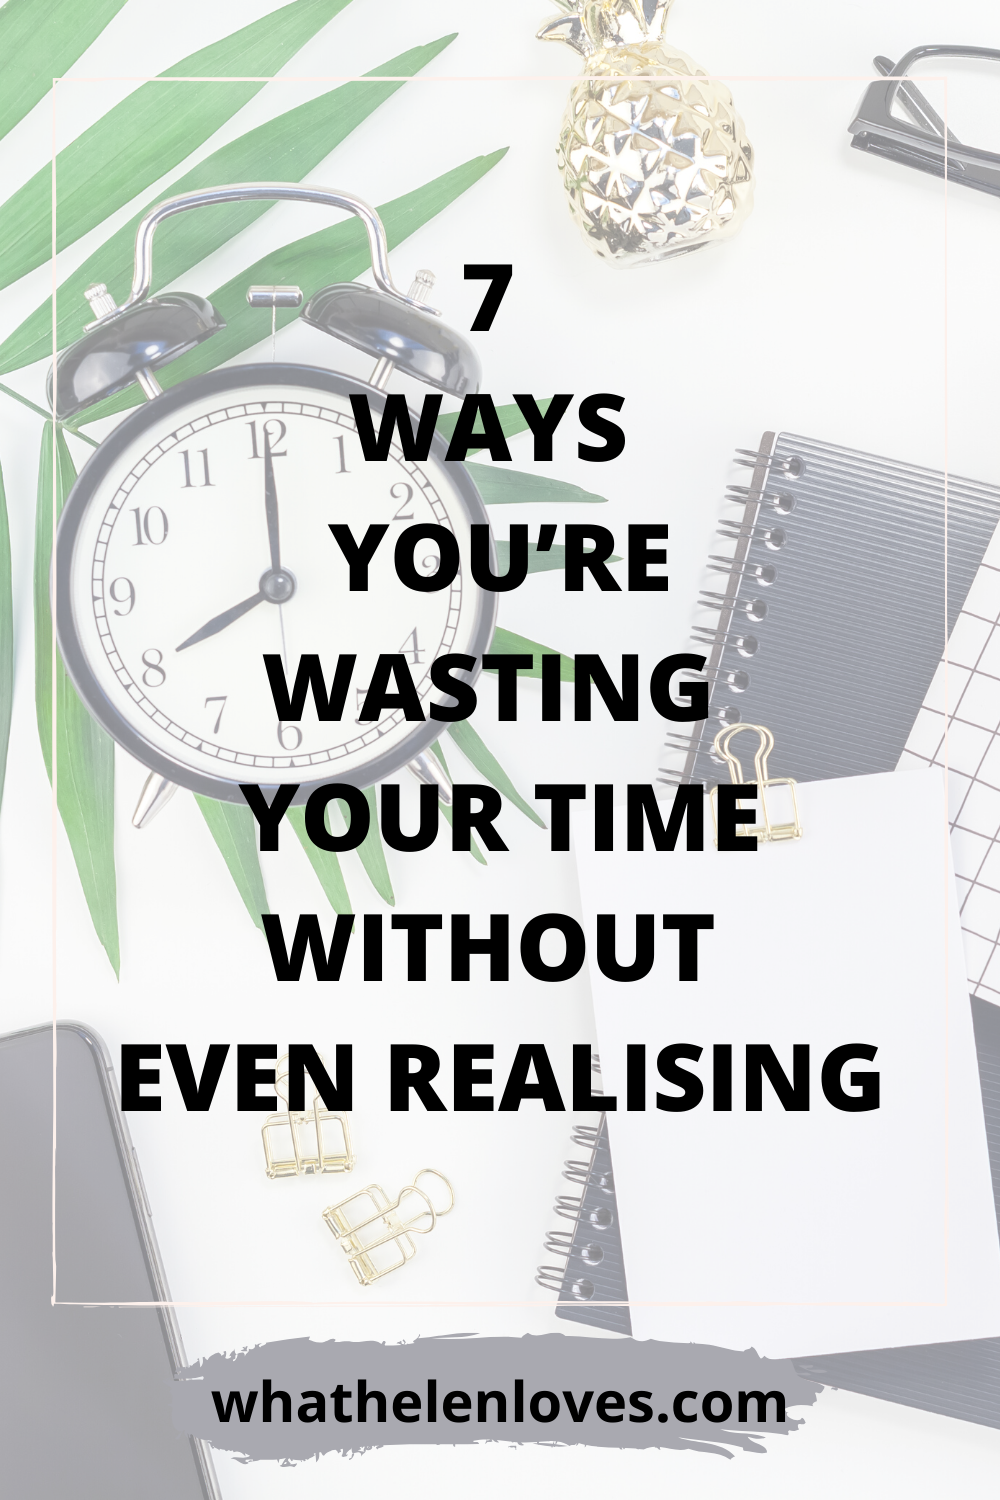 Pinterest pin for a post about 7 ways you're wasting your time without even realising.